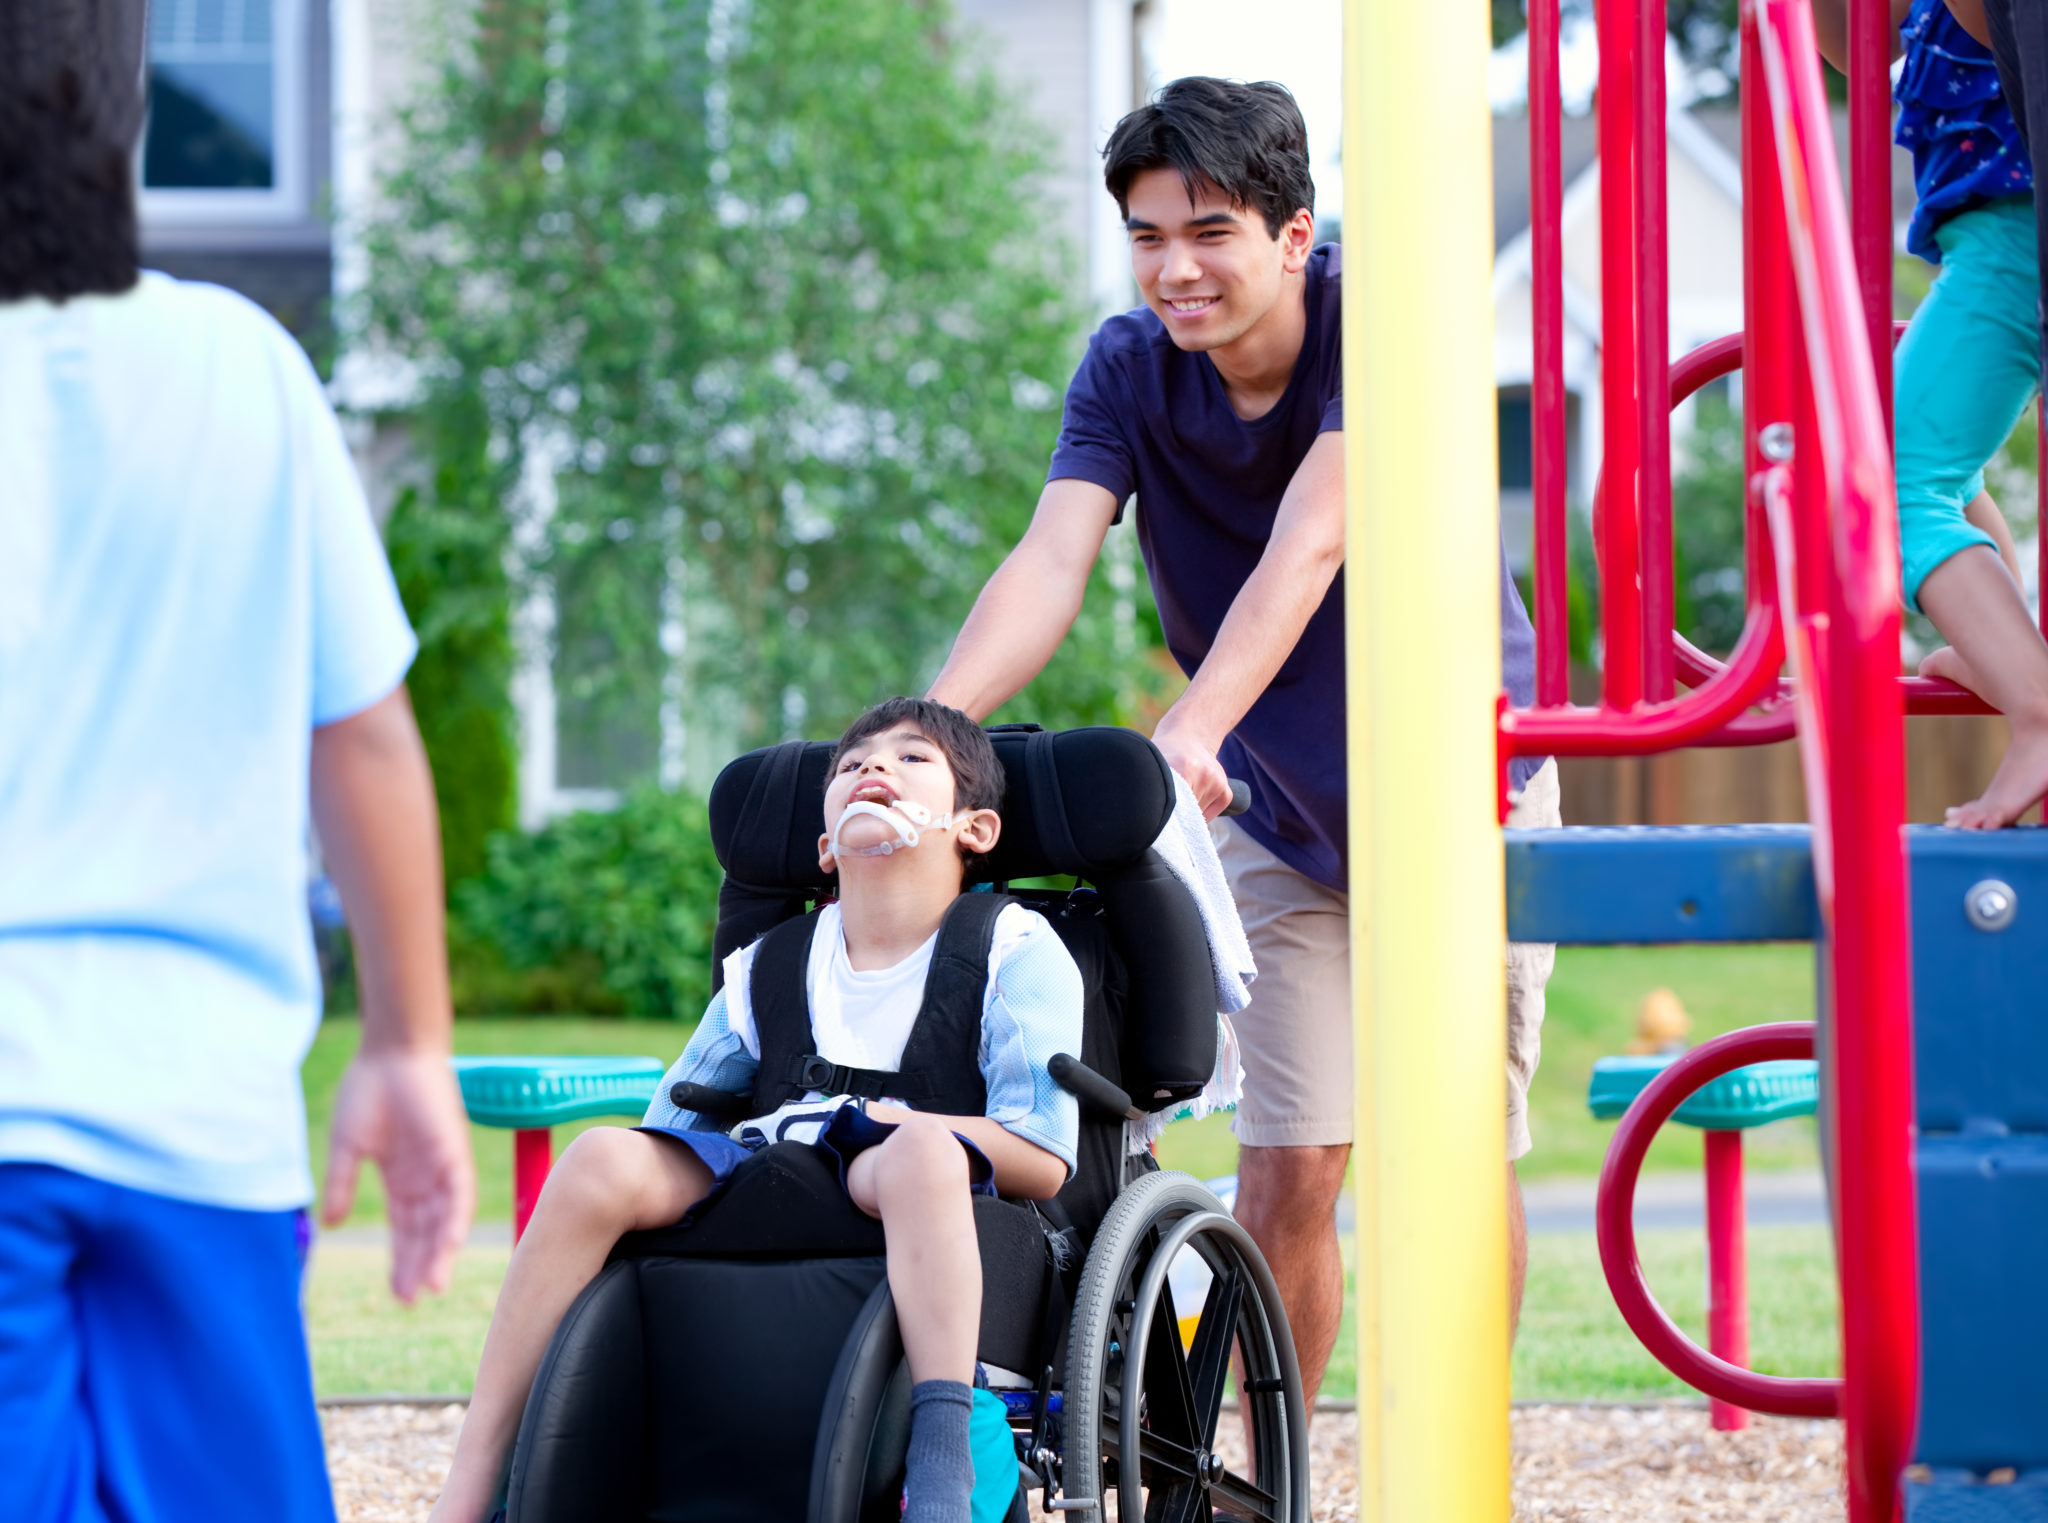 CARING FOR YOUR LOVED ONES WITH SPECIAL NEEDS